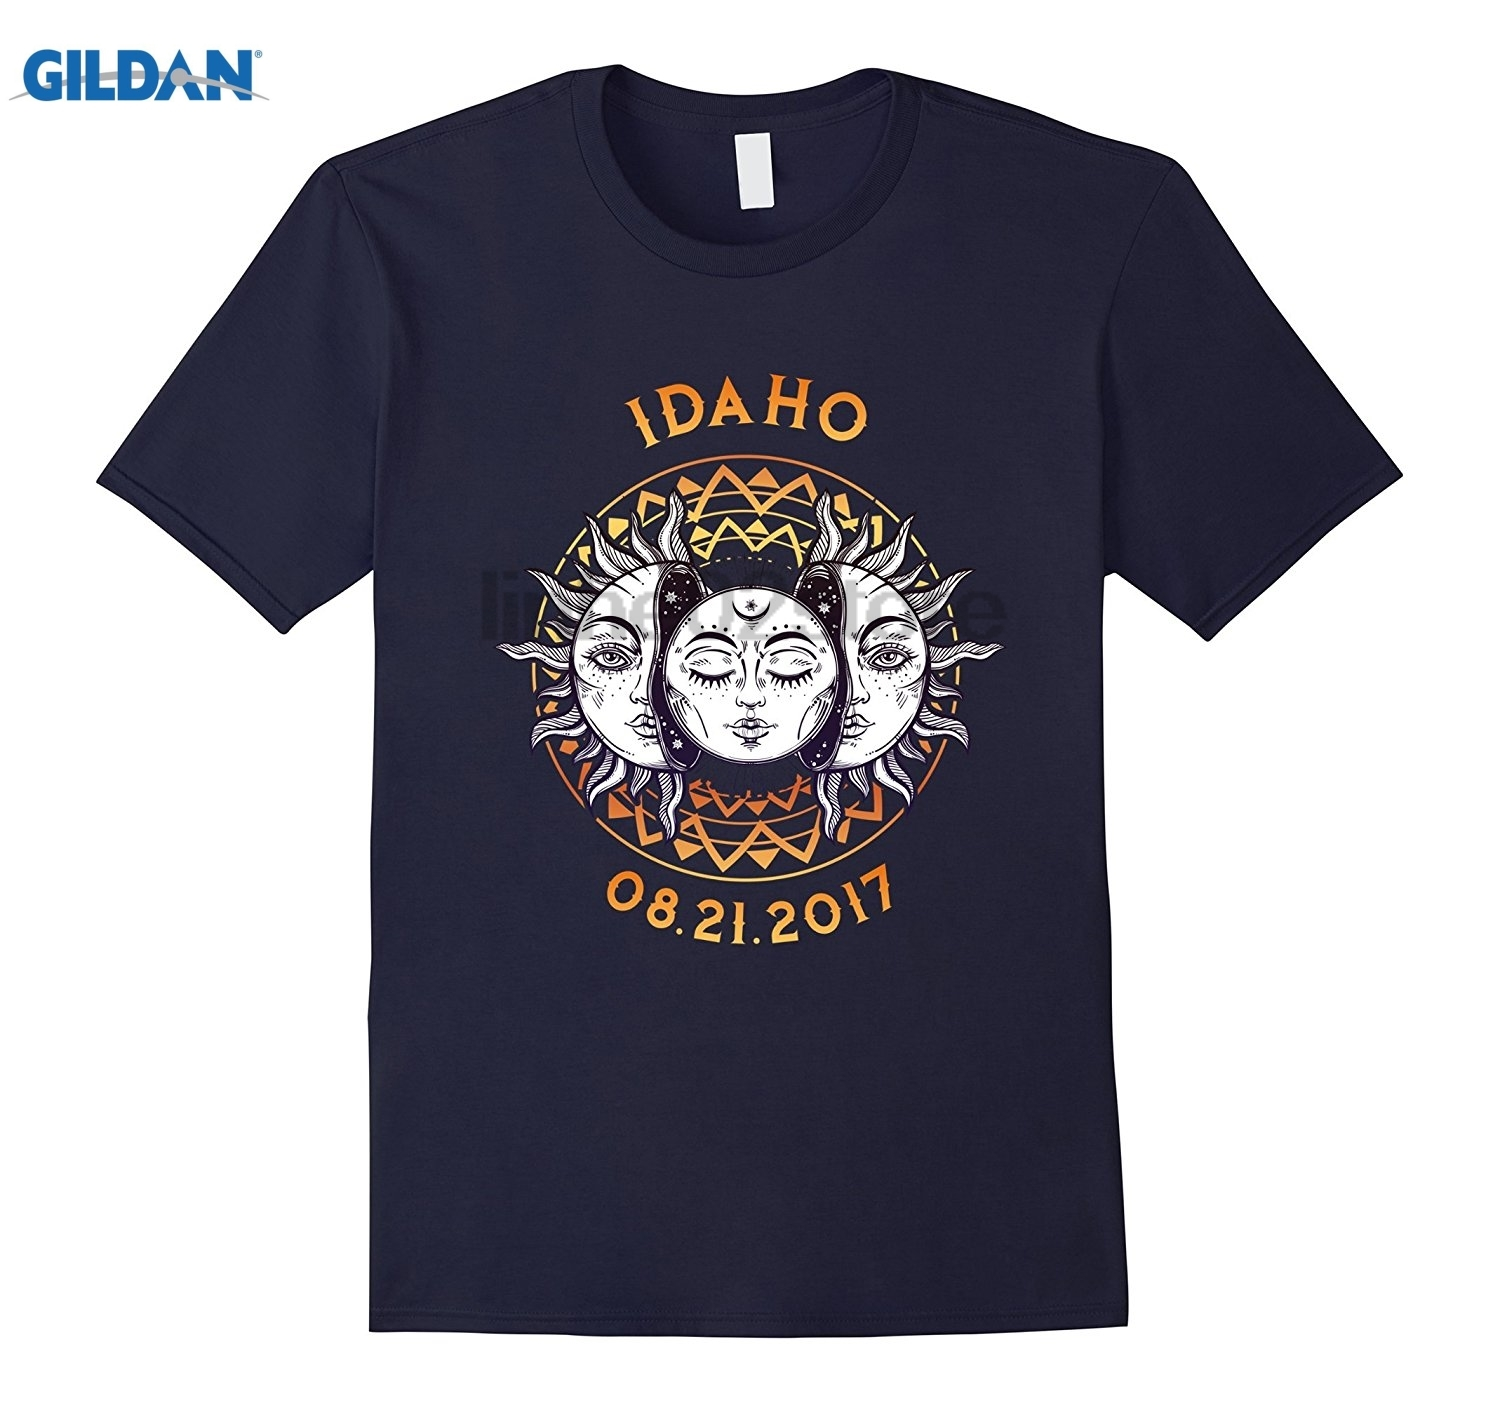 GILDAN Idaho Total Solar Eclipse 2017 T Shirt Vintage Graphic Hot Womens T-shirt summer dress T-shirt